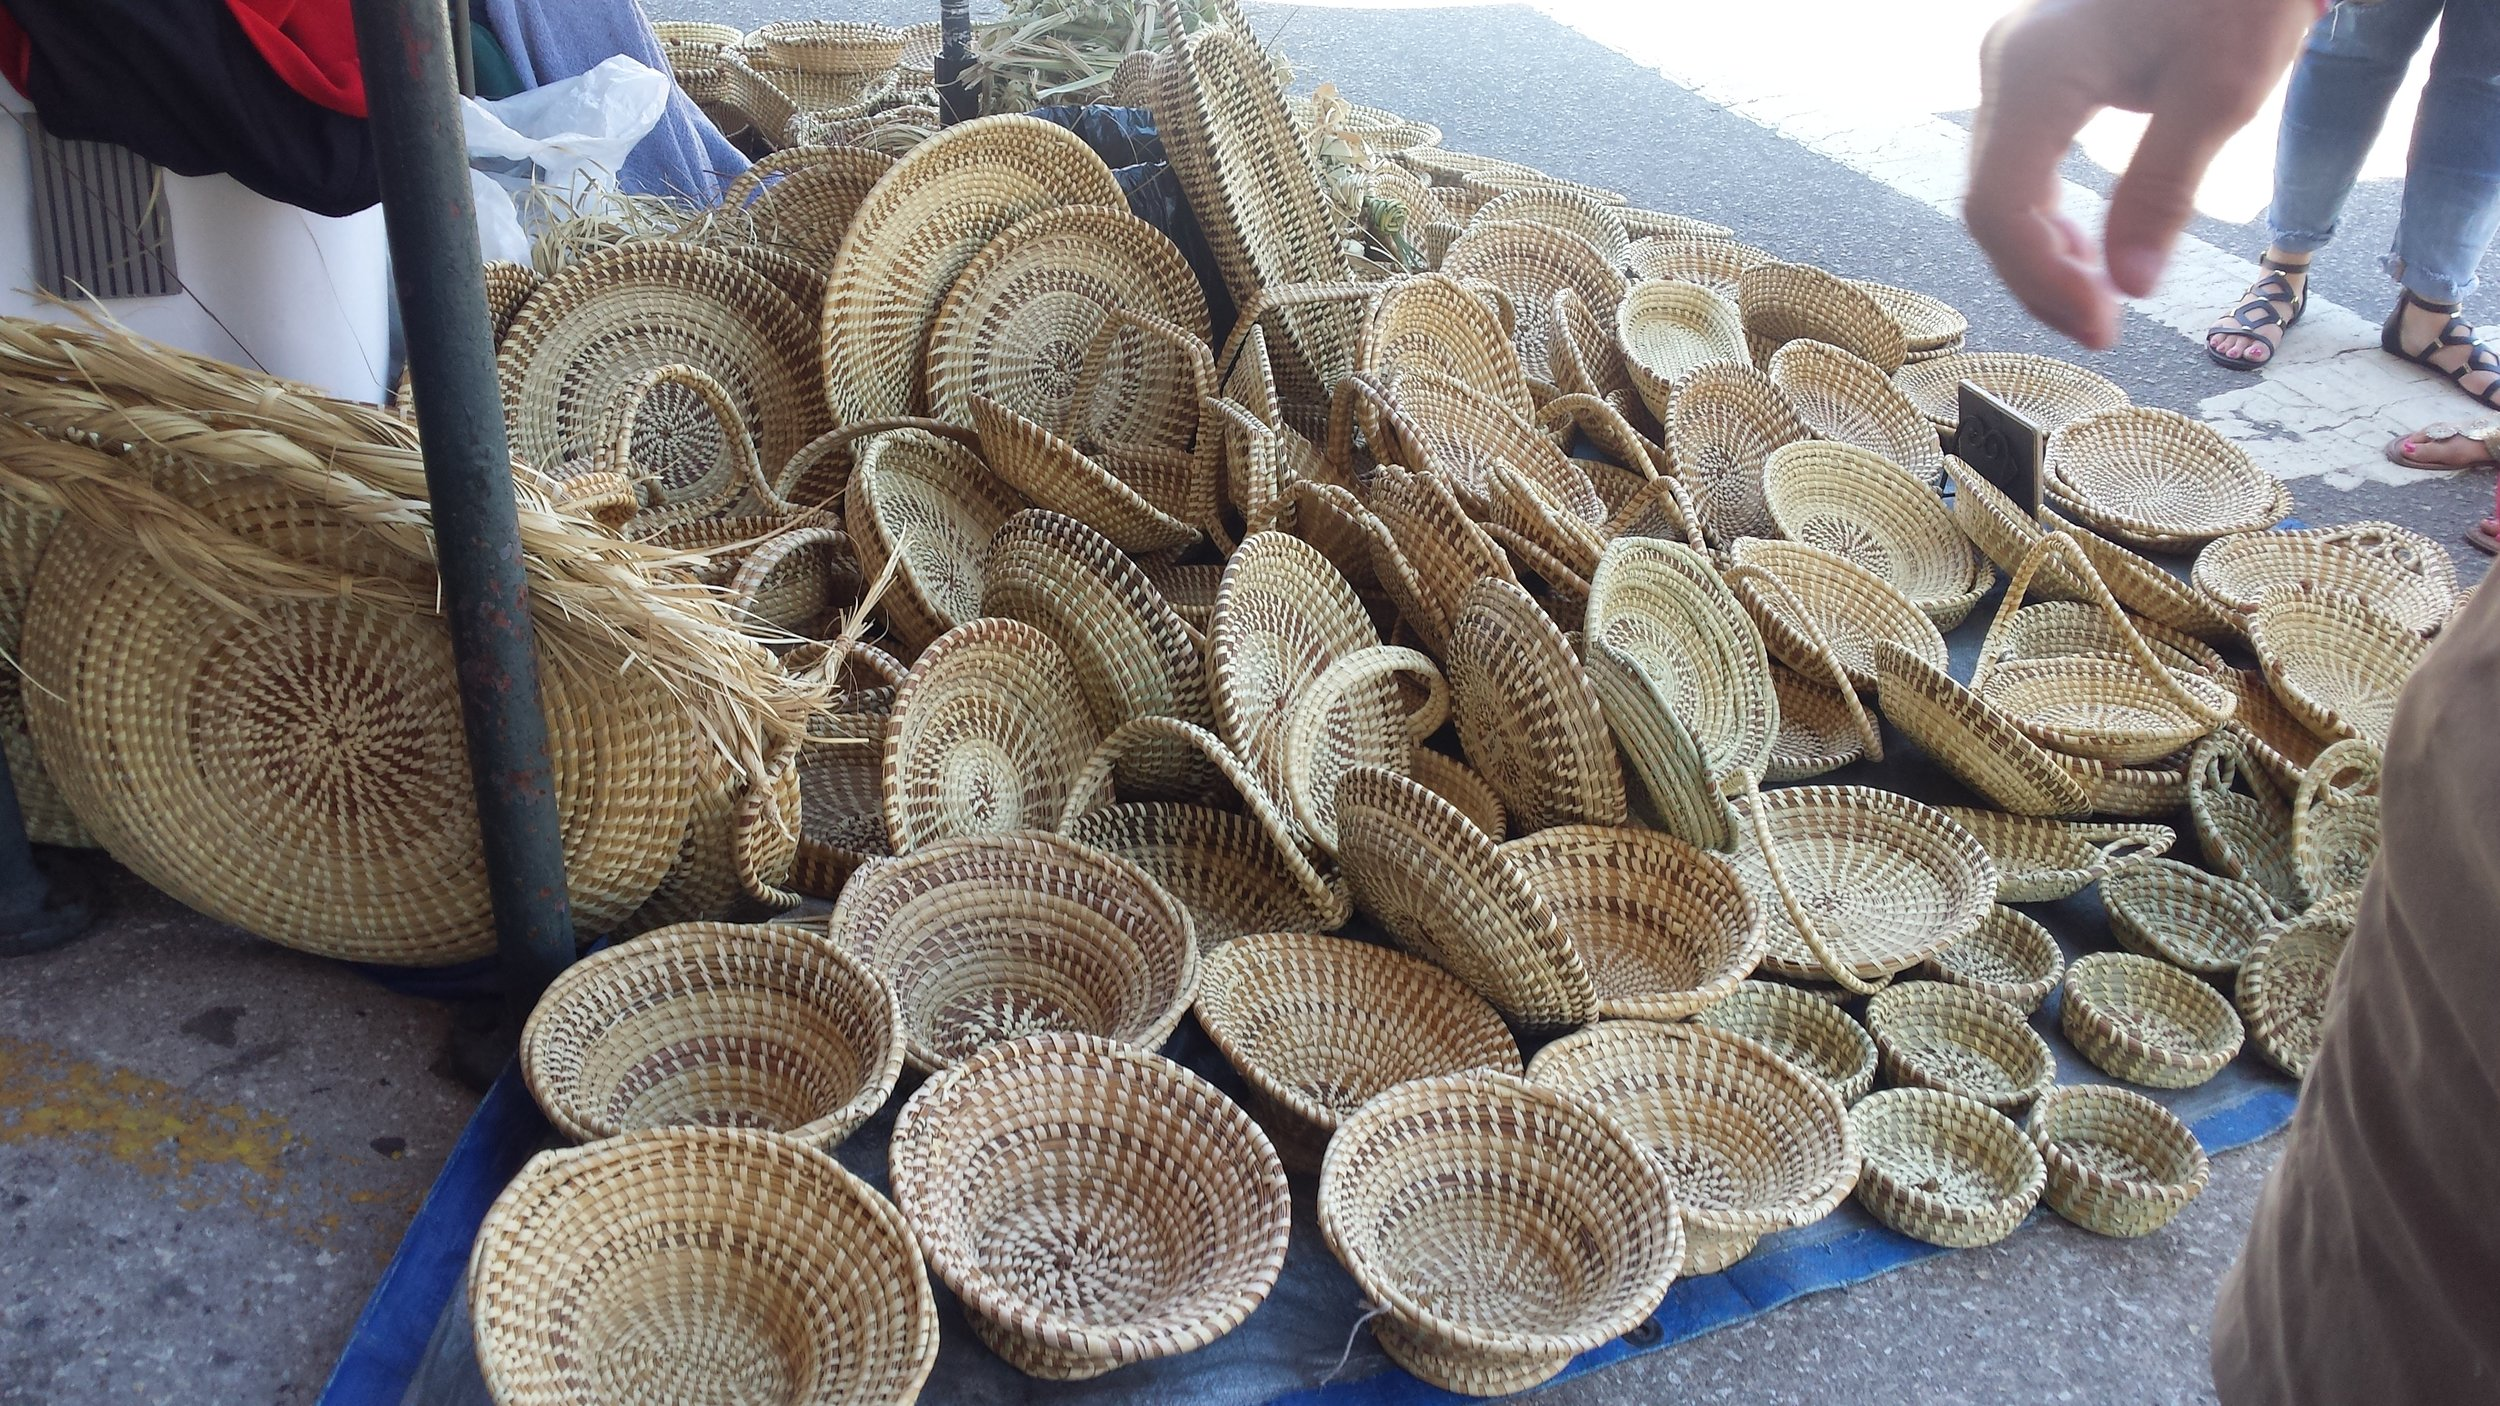 Sweetgrass basketry is an art form in Charleston.